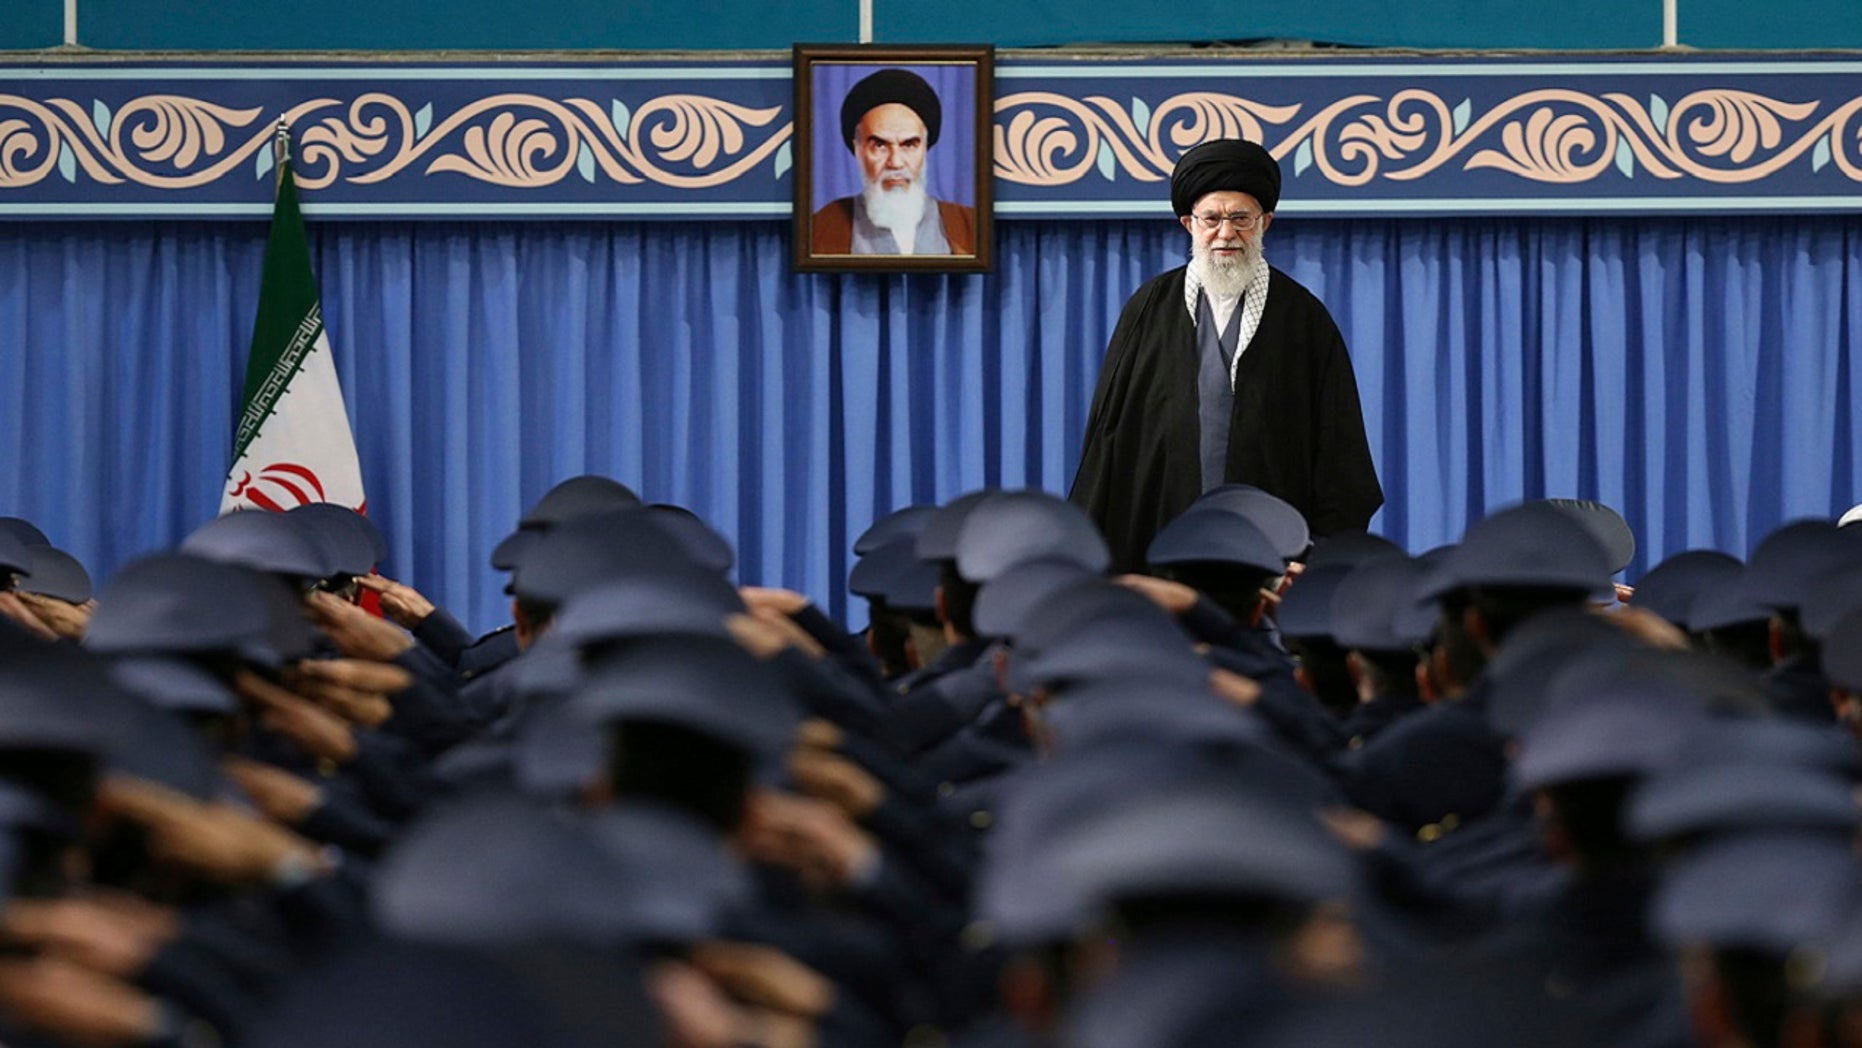 Supreme Leader Ayatollah Ali Khamenei stands as army air force and air defense salute at the start of their meeting in Tehran, Iran, Feb. 8, 2018. A portrait of the late revolutionary founder Ayatollah Khomeini hangs in the background.